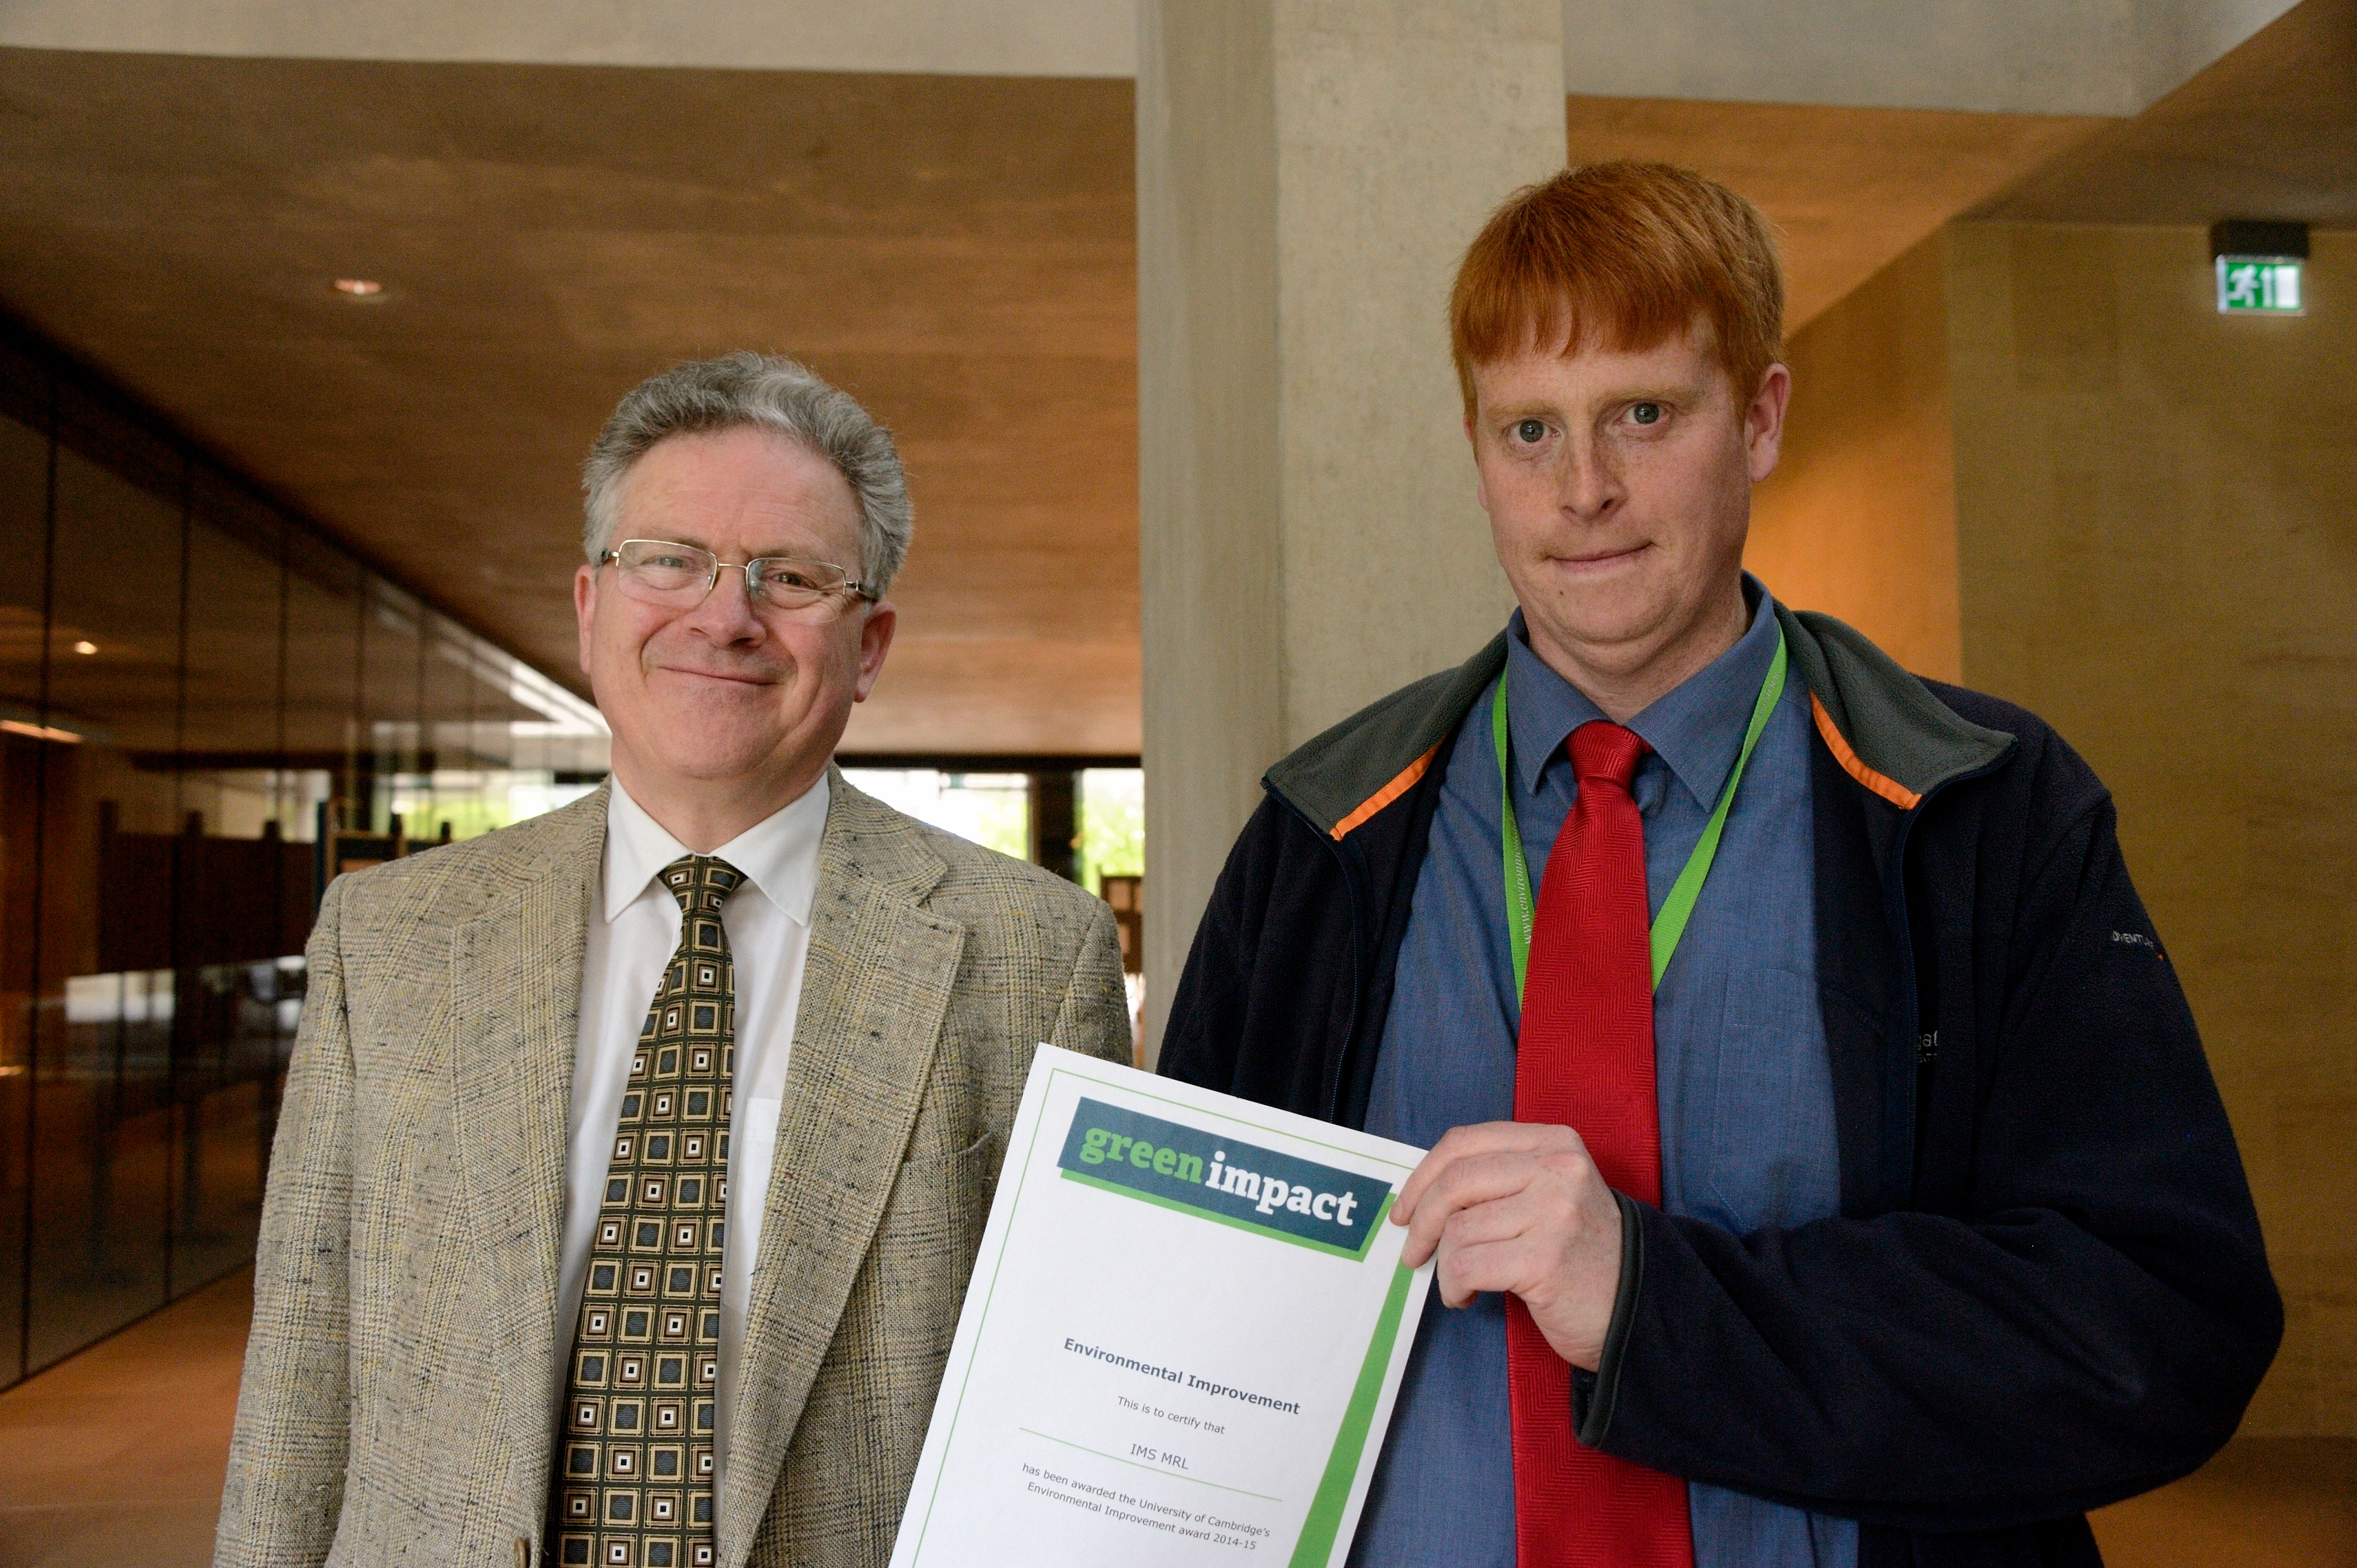 Jonathan Fort from IMS, winner of the Environmental Improvement Award, with Professor Jeremy Sanders, Pro-Vice-Chancellor of Cambridge University